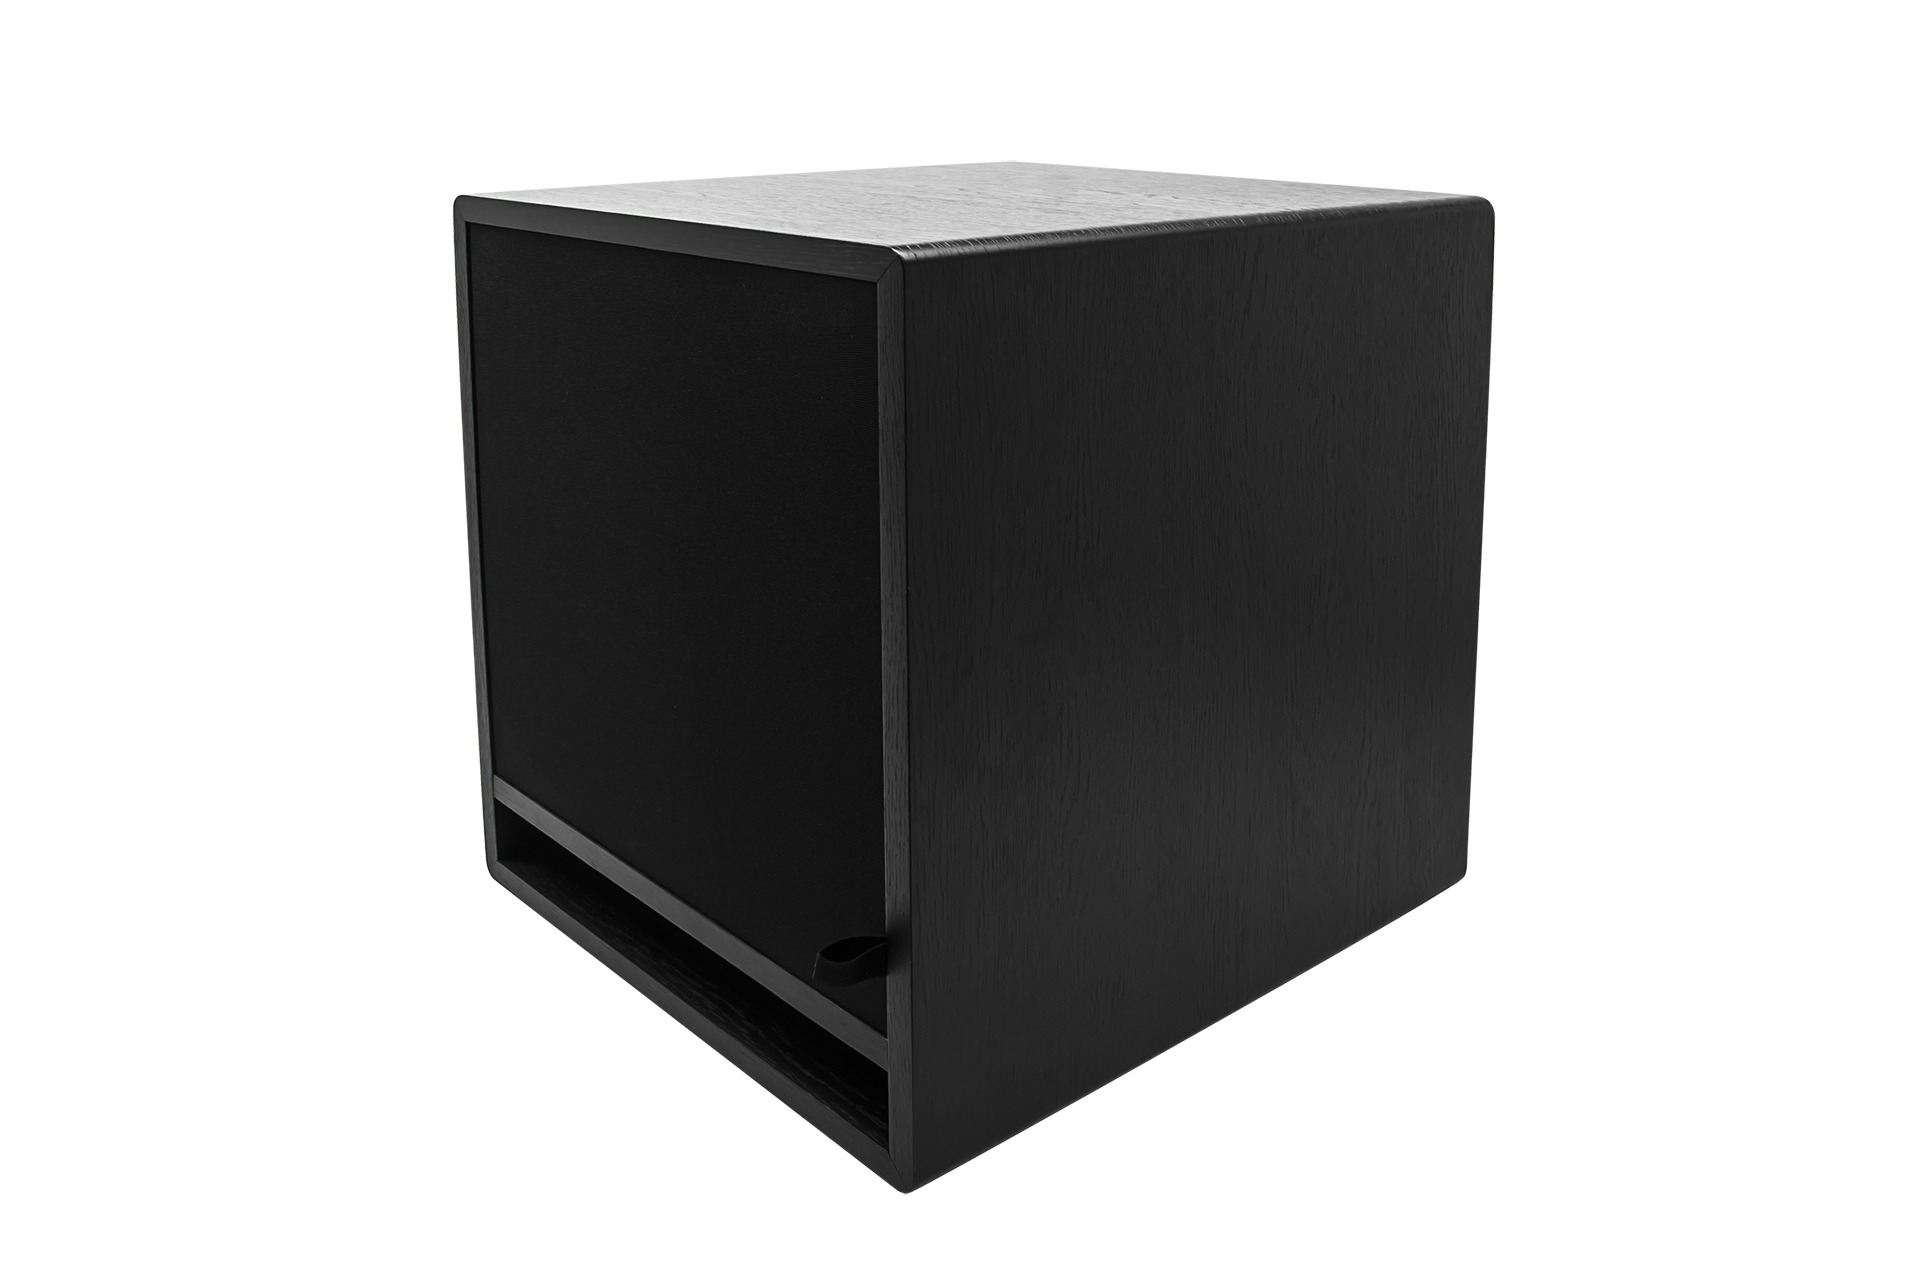 Earthquake FF-12 subwoofer